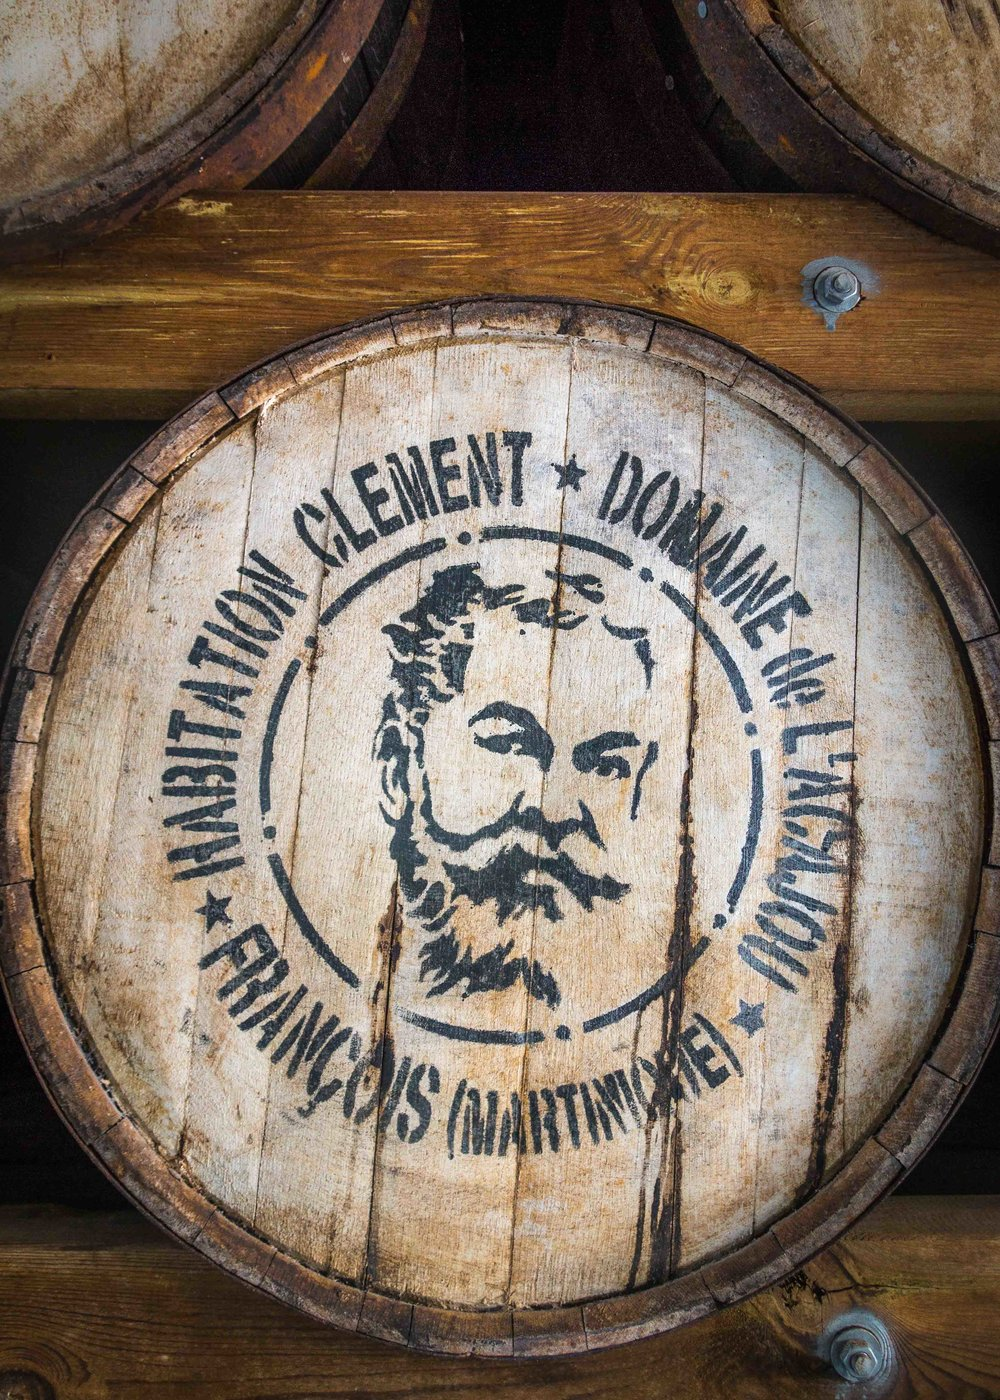 A barrel of aging rum features a portrait of Charles Clément